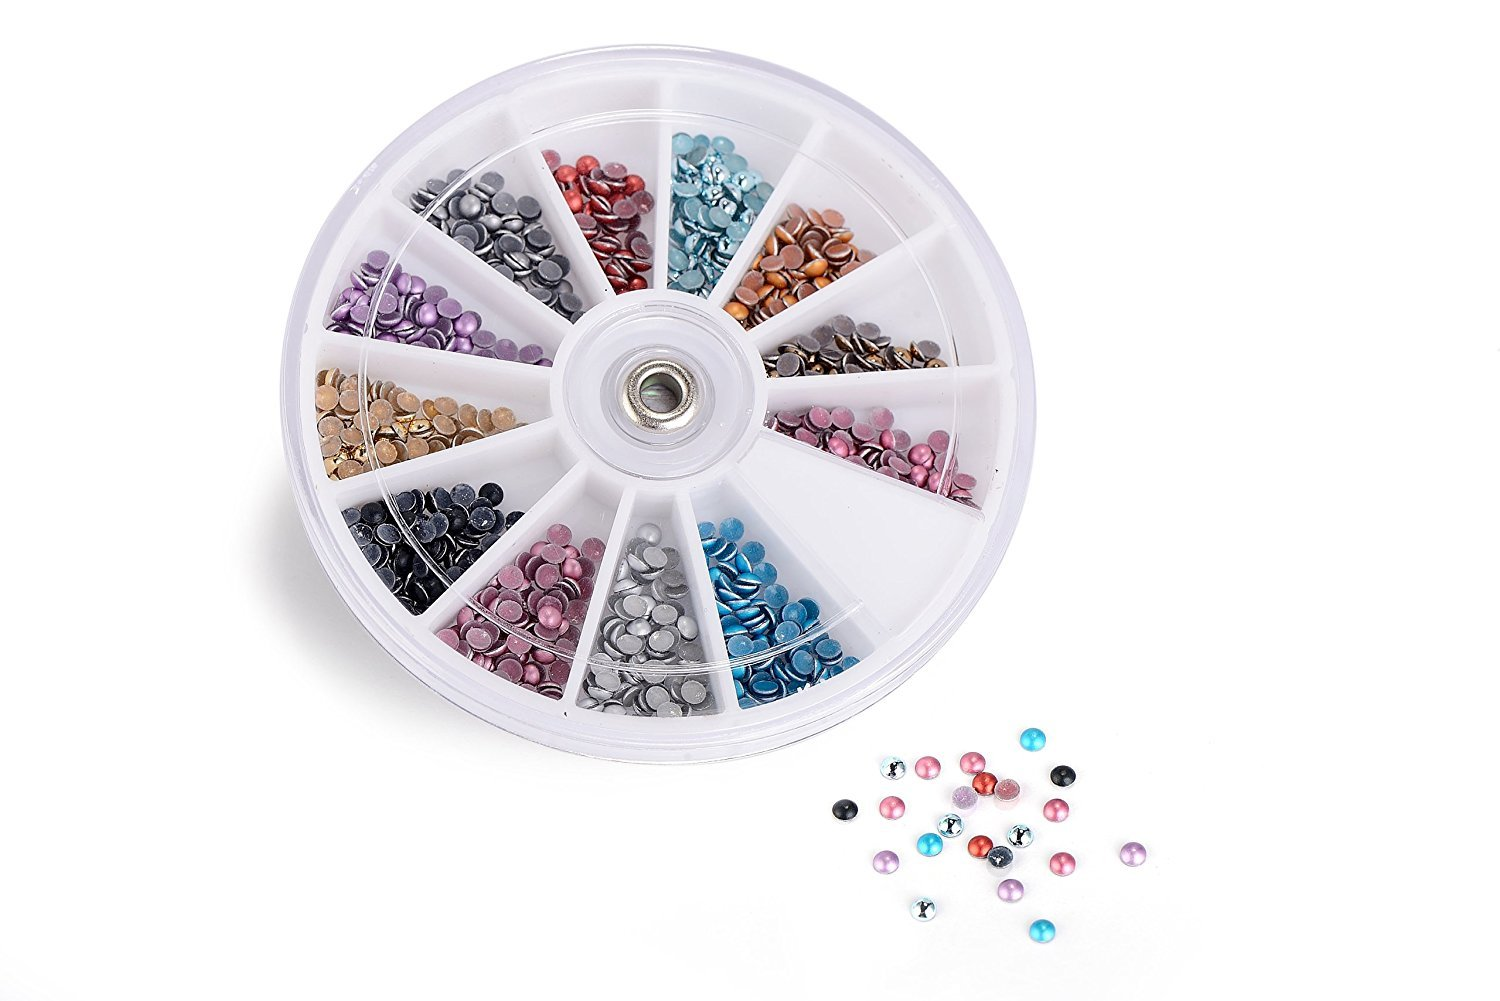 Glow Nail Art Decorations Half Round Pearl Design Rhinestones Paragon Enterprise Limited Glow-NA-6